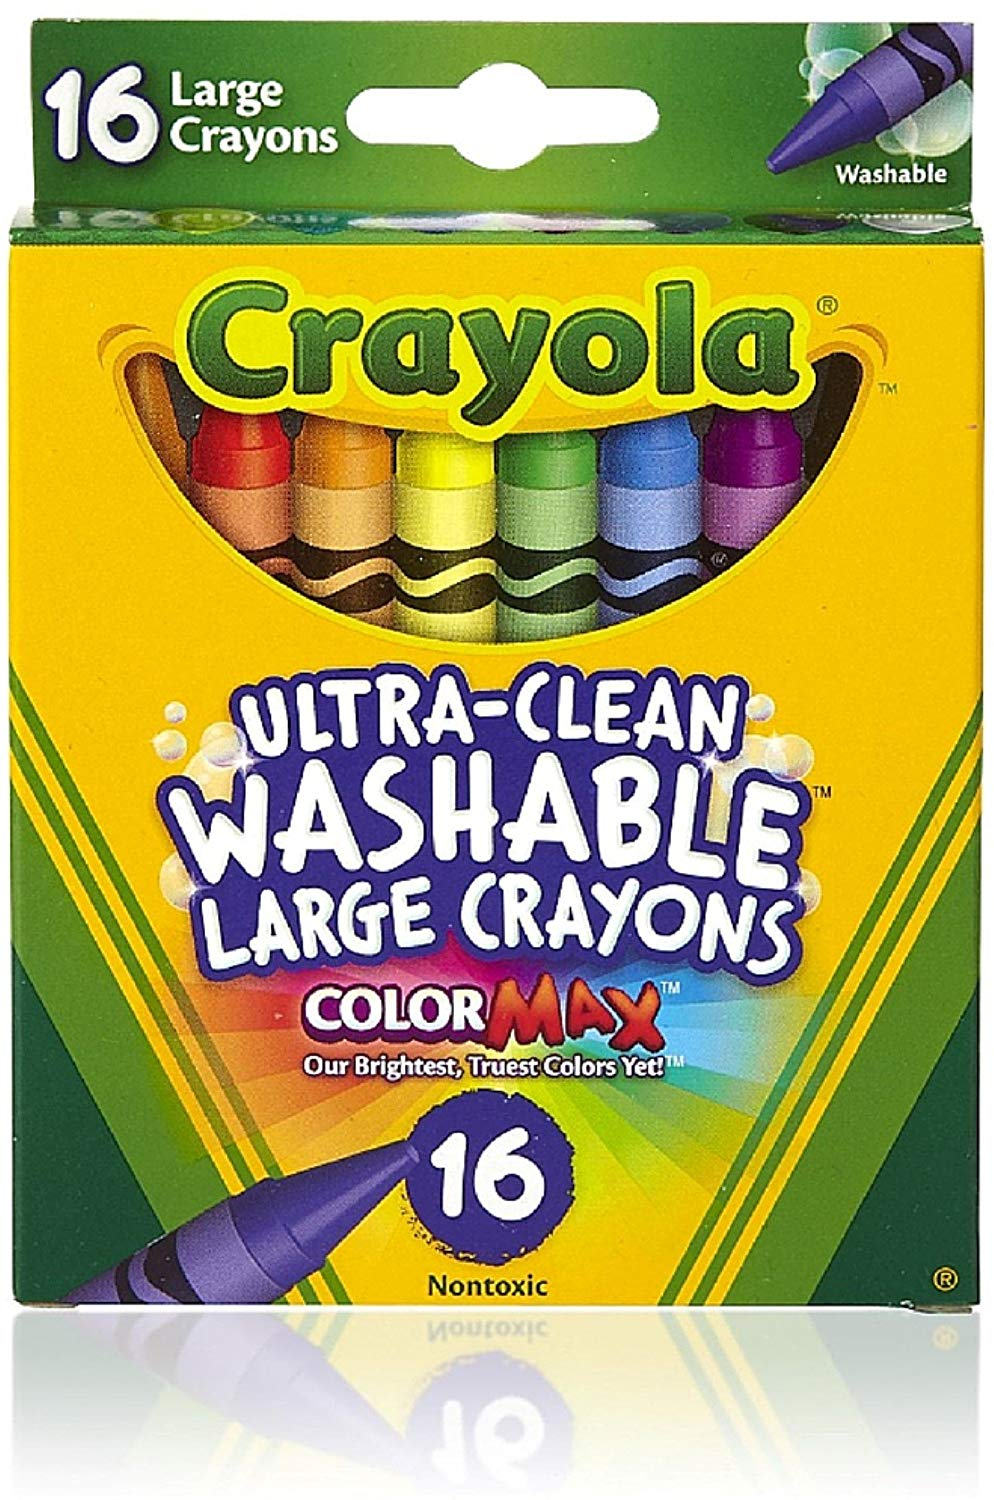 Crayola Large Washable Crayons, Assorted Colors, 16 Count